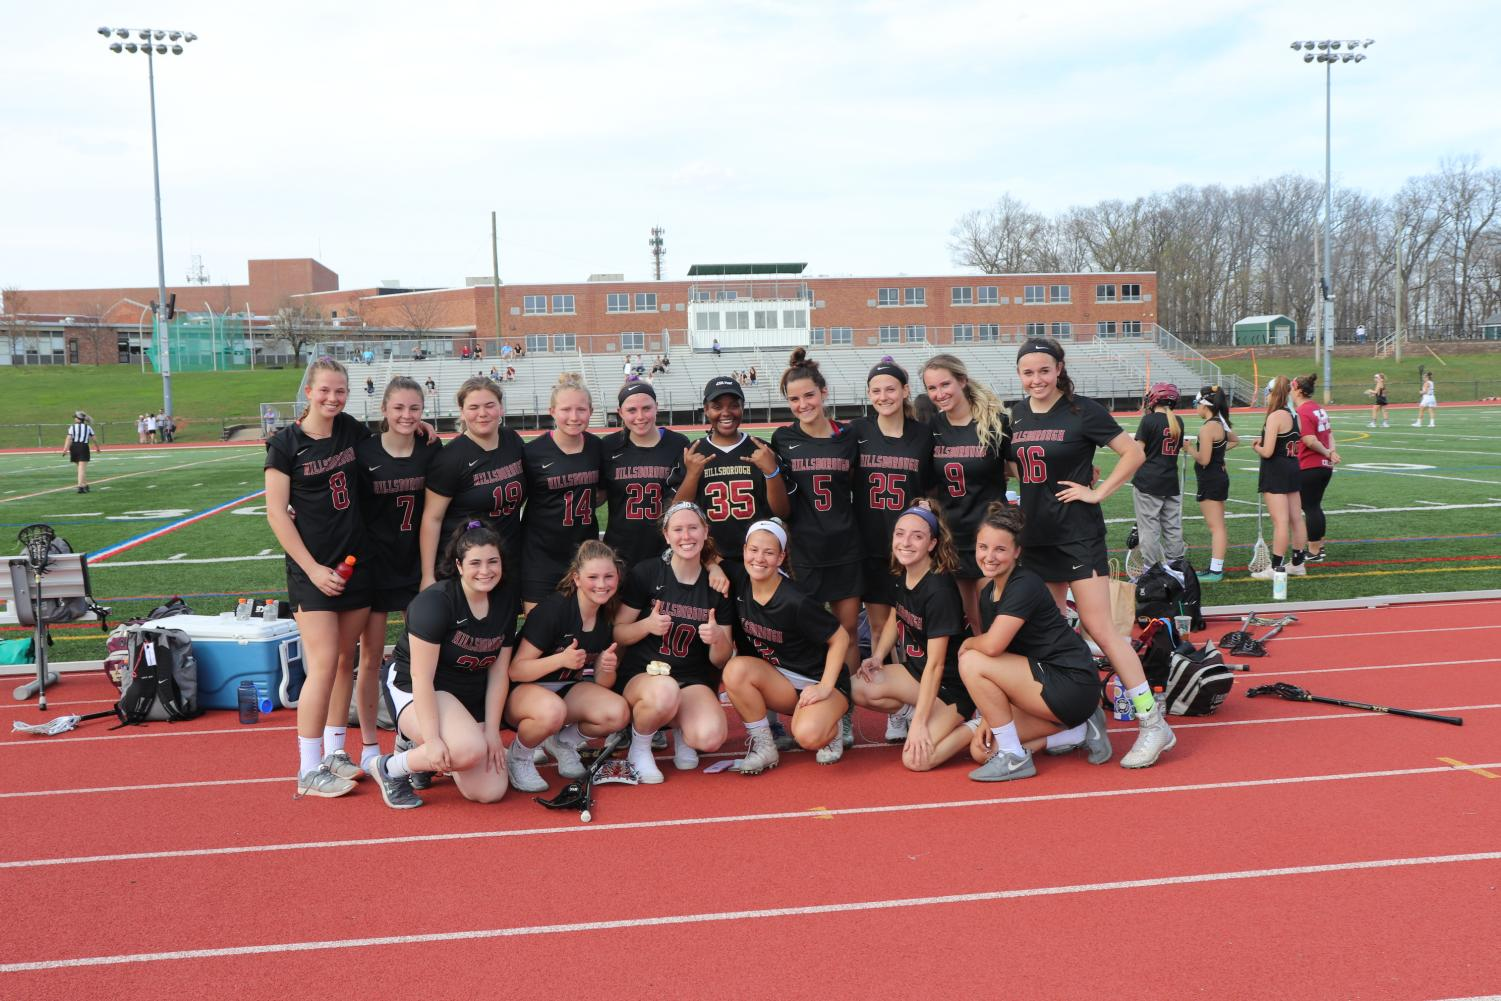 Raider girls lax after a 8-7 win against Basking Ridge earlier in the season.